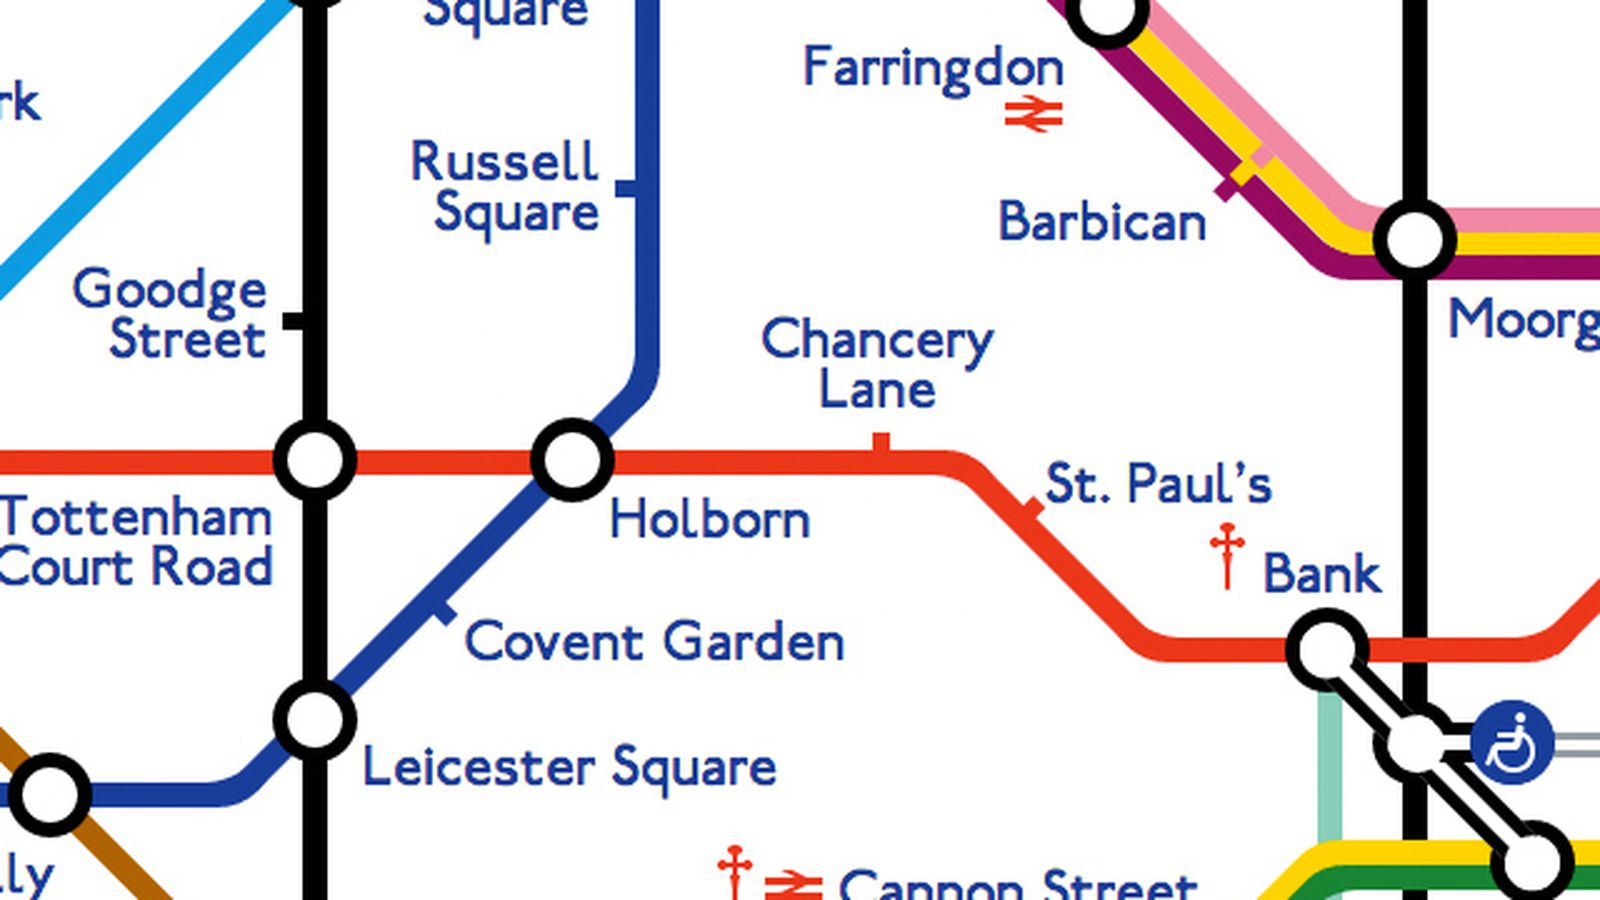 Programmer Shuns Images Recreates Intricate London Subway Map From Pure Web Code The Verge